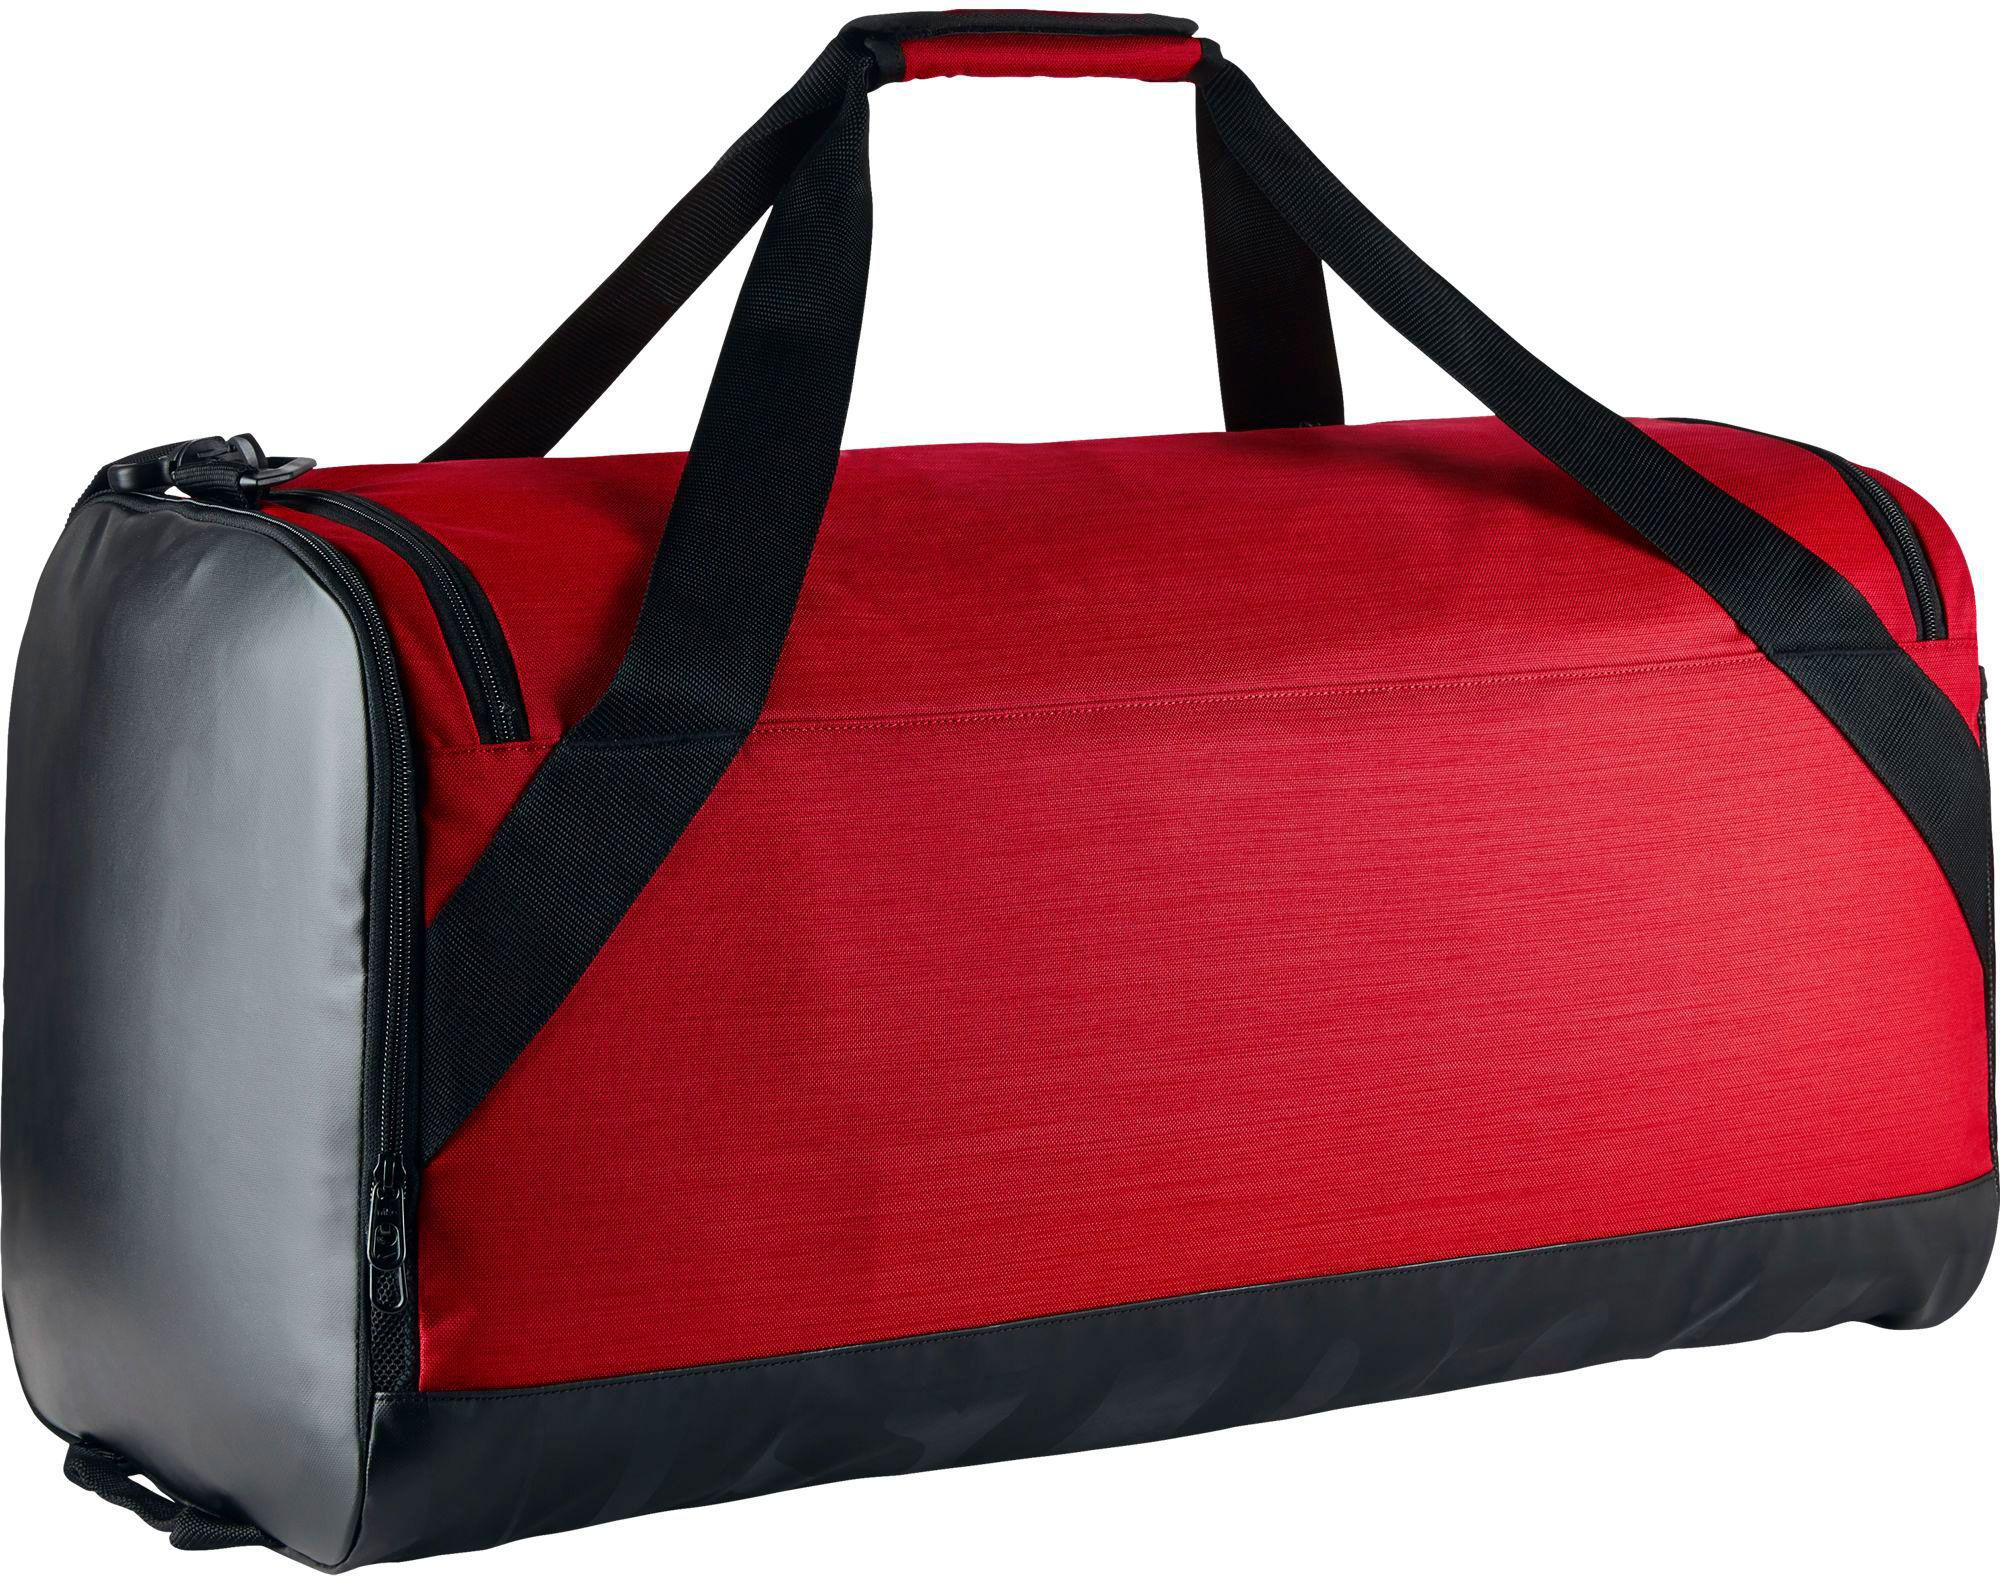 Nike Duffle Bag Red Fitzpatrick Painting  Fitzpatrick Painting